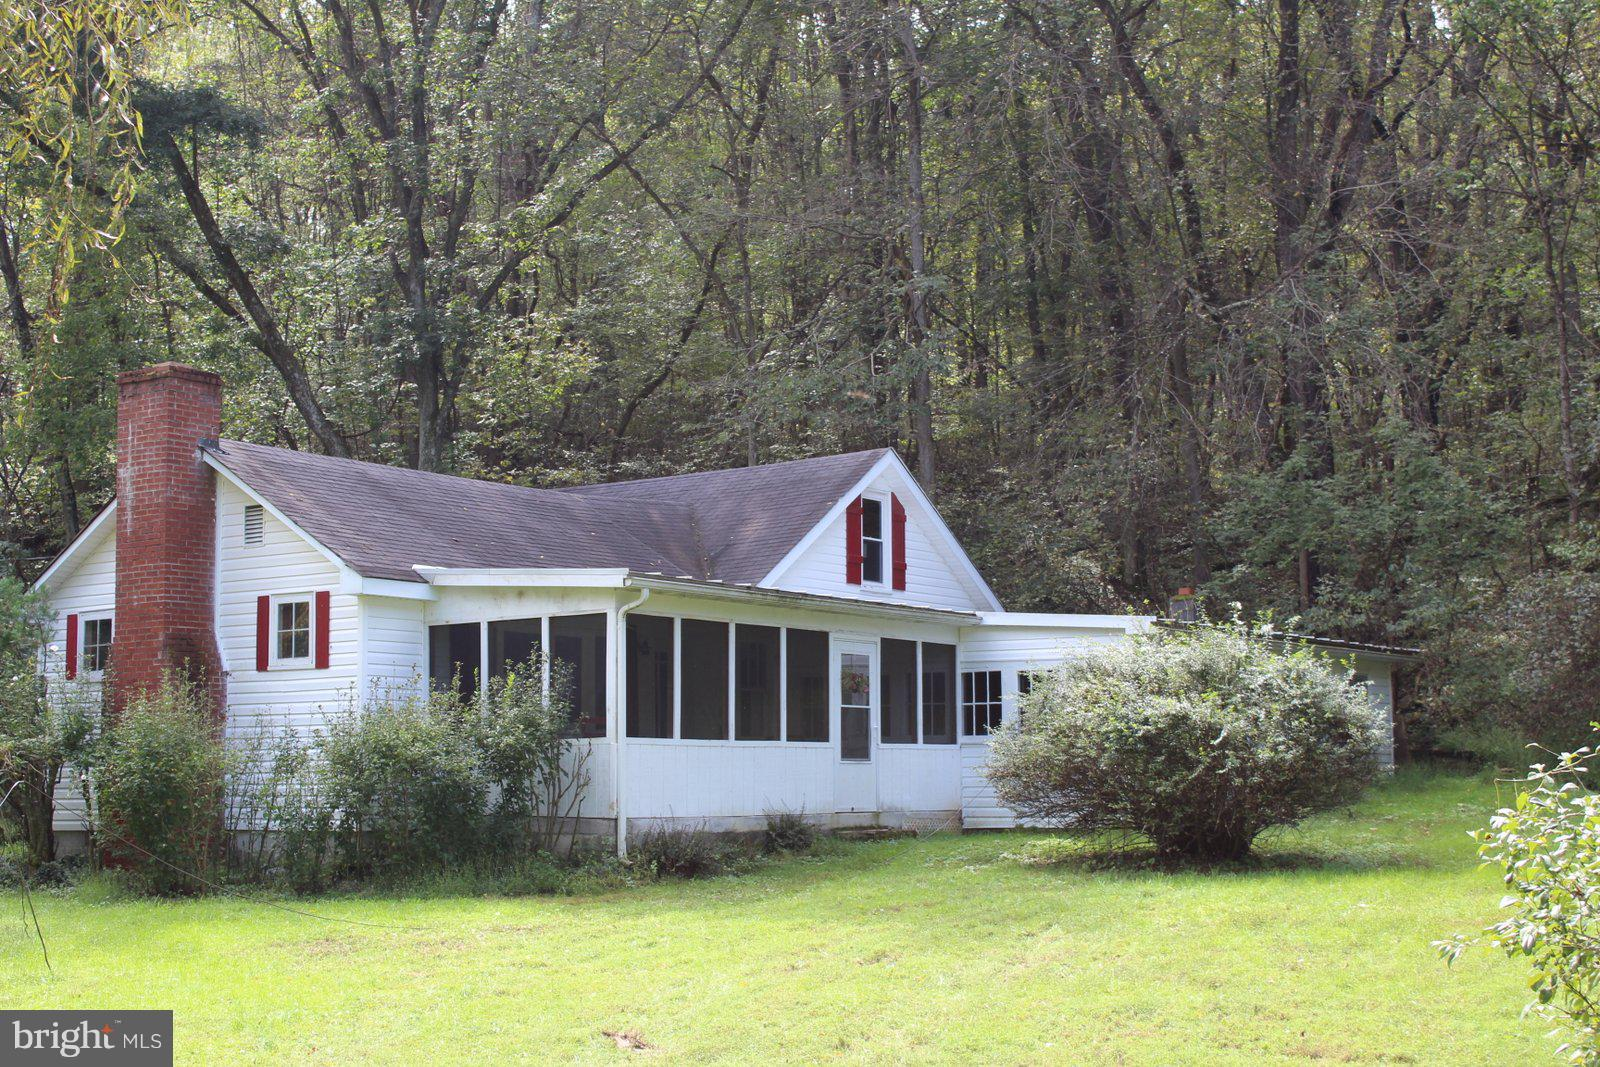 1485 COMPTON HOLLOW ROAD, RILEYVILLE, VA 22650